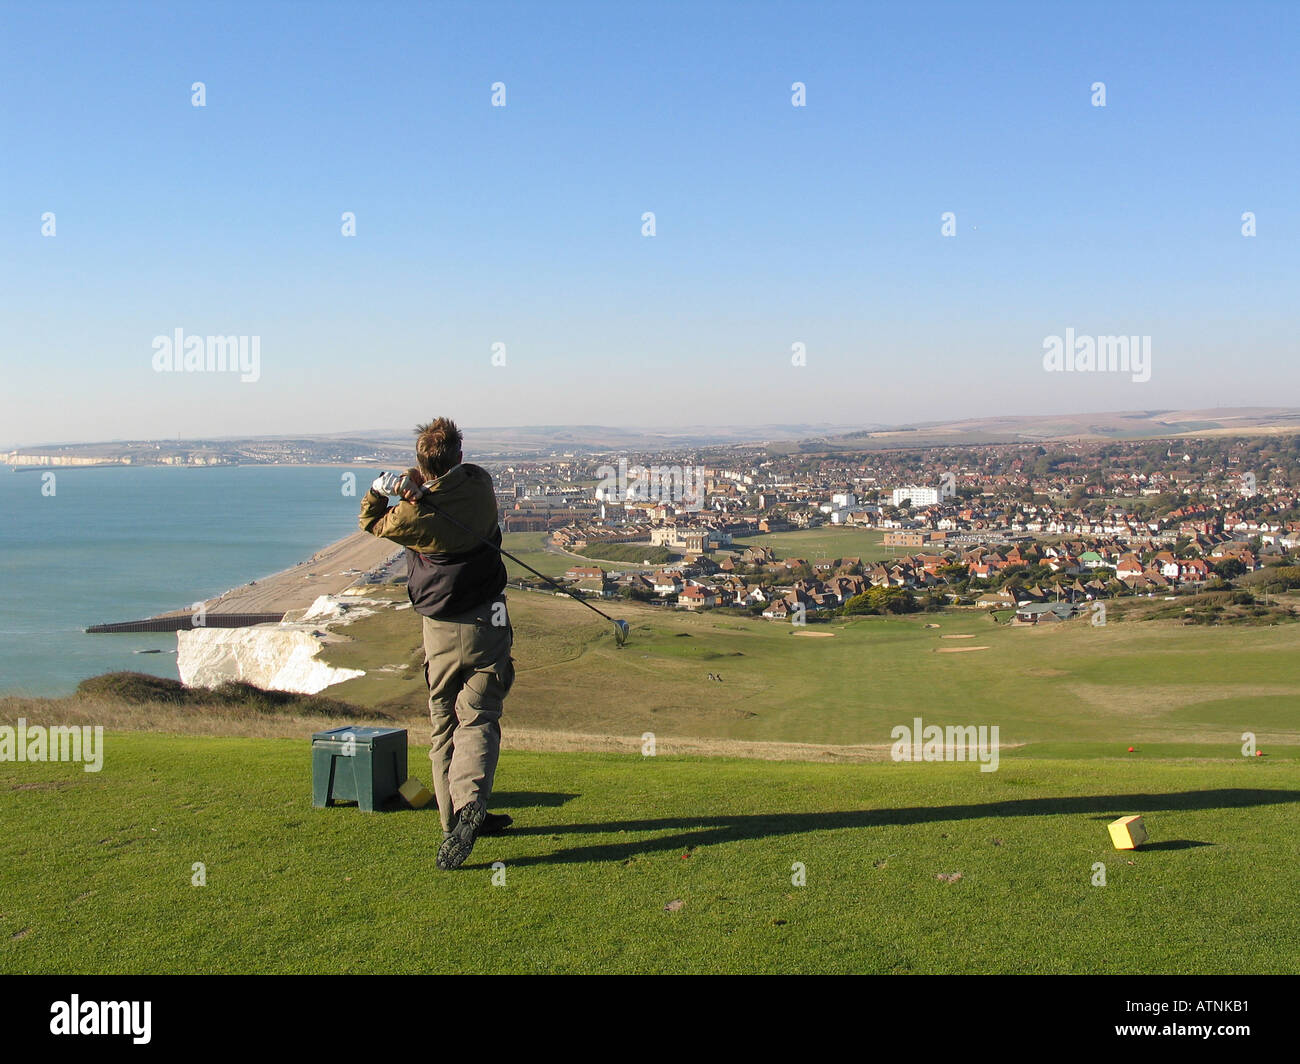 A golfer on the Seaford Head golf course on the South downs in Britain - Stock Image